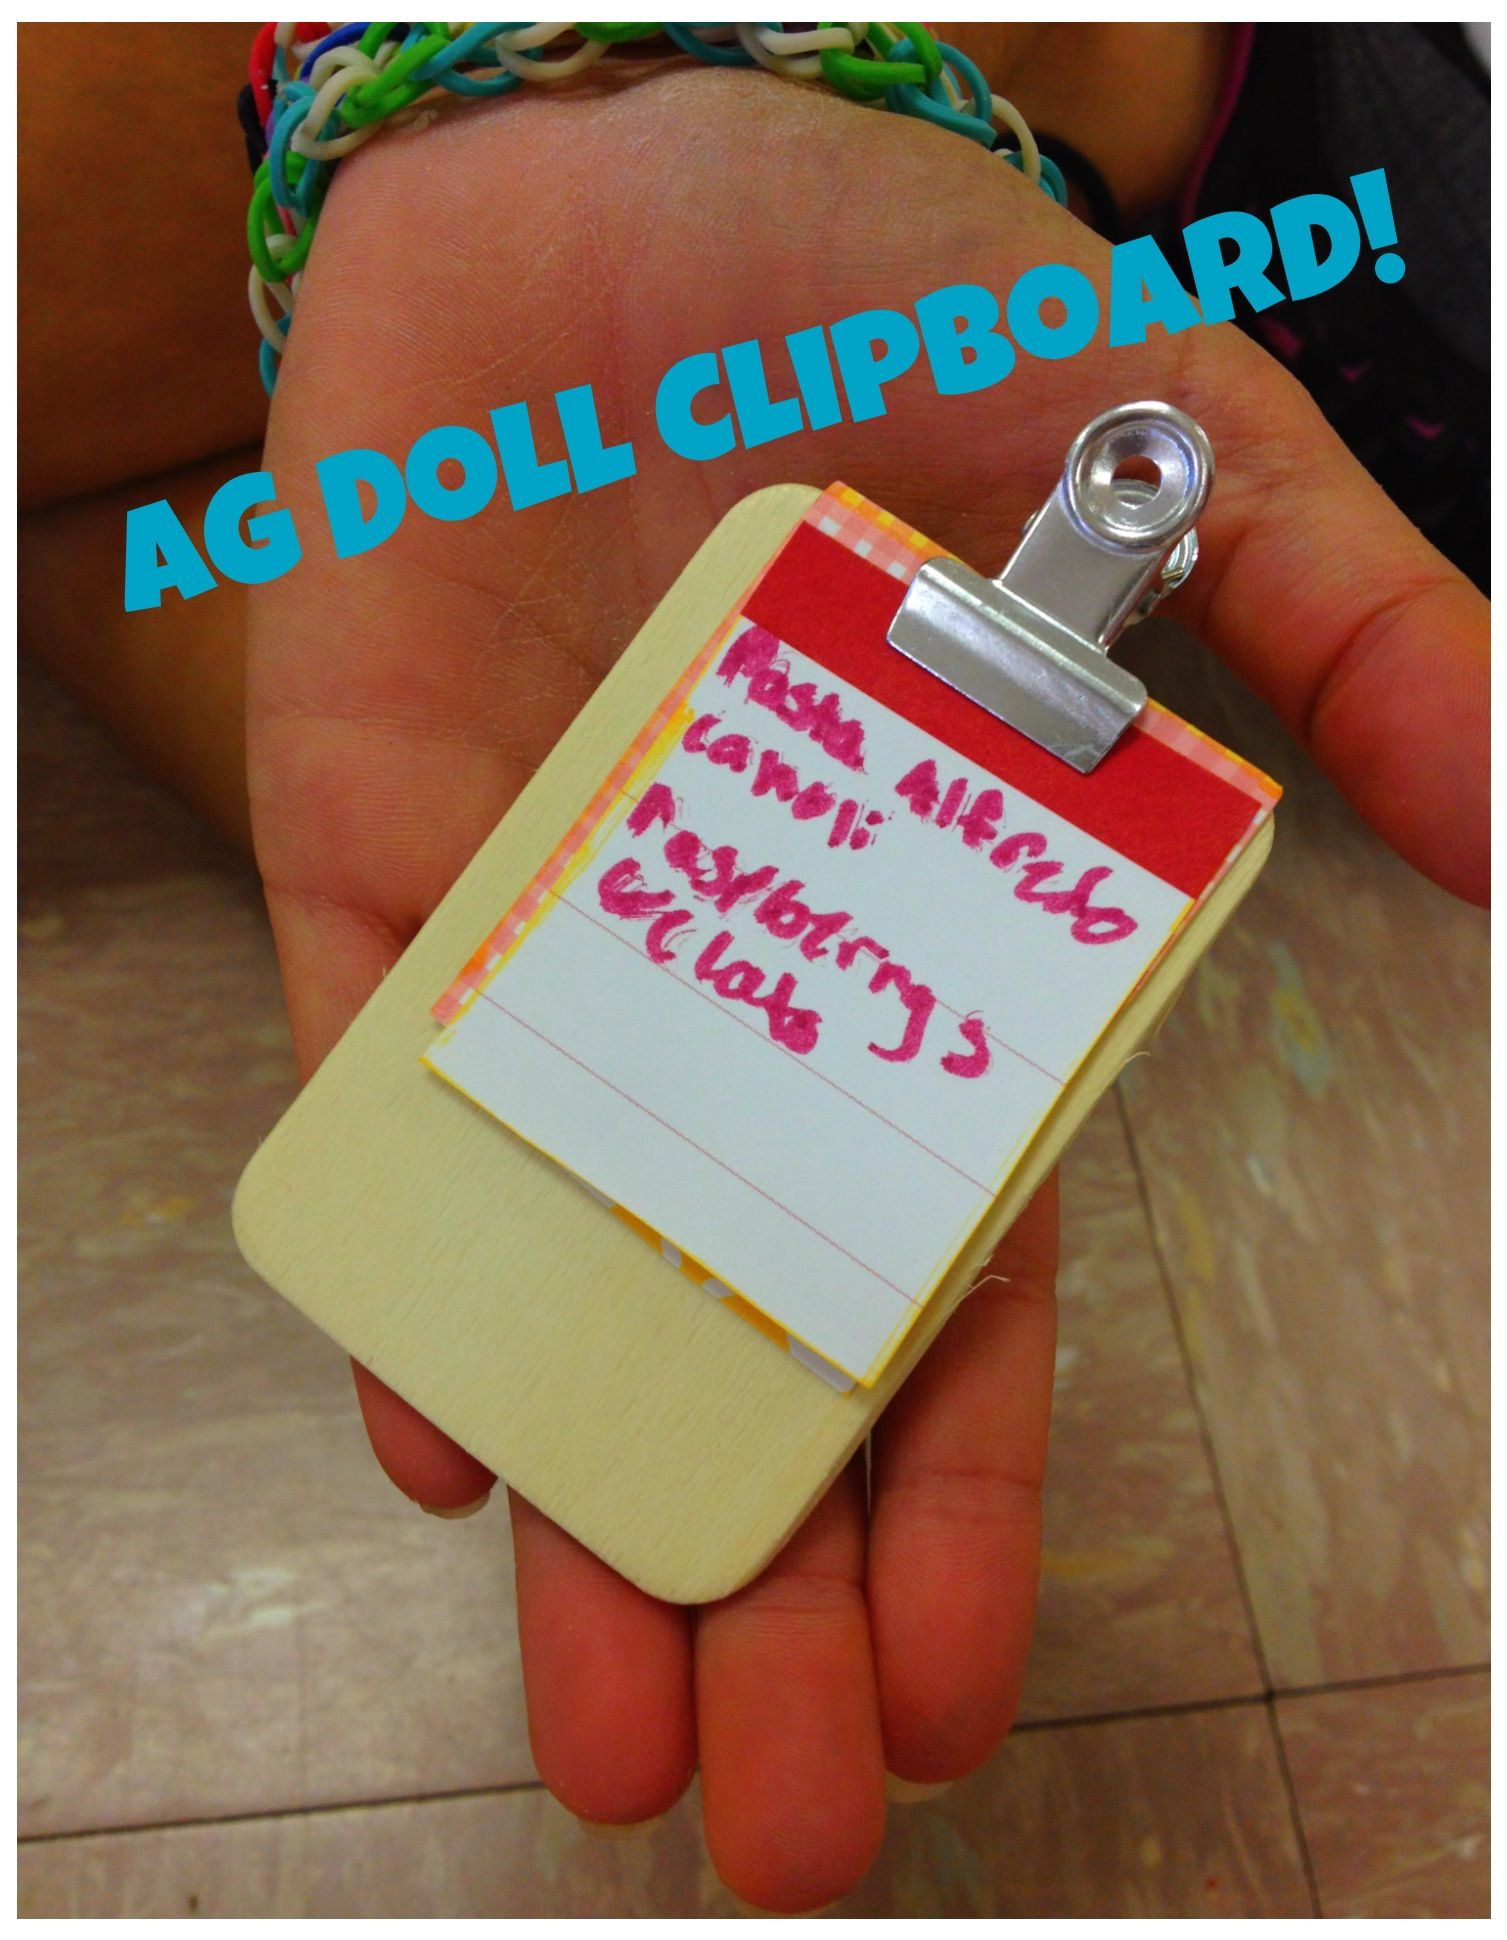 45+ American girl crafts sew and stuff kit ideas